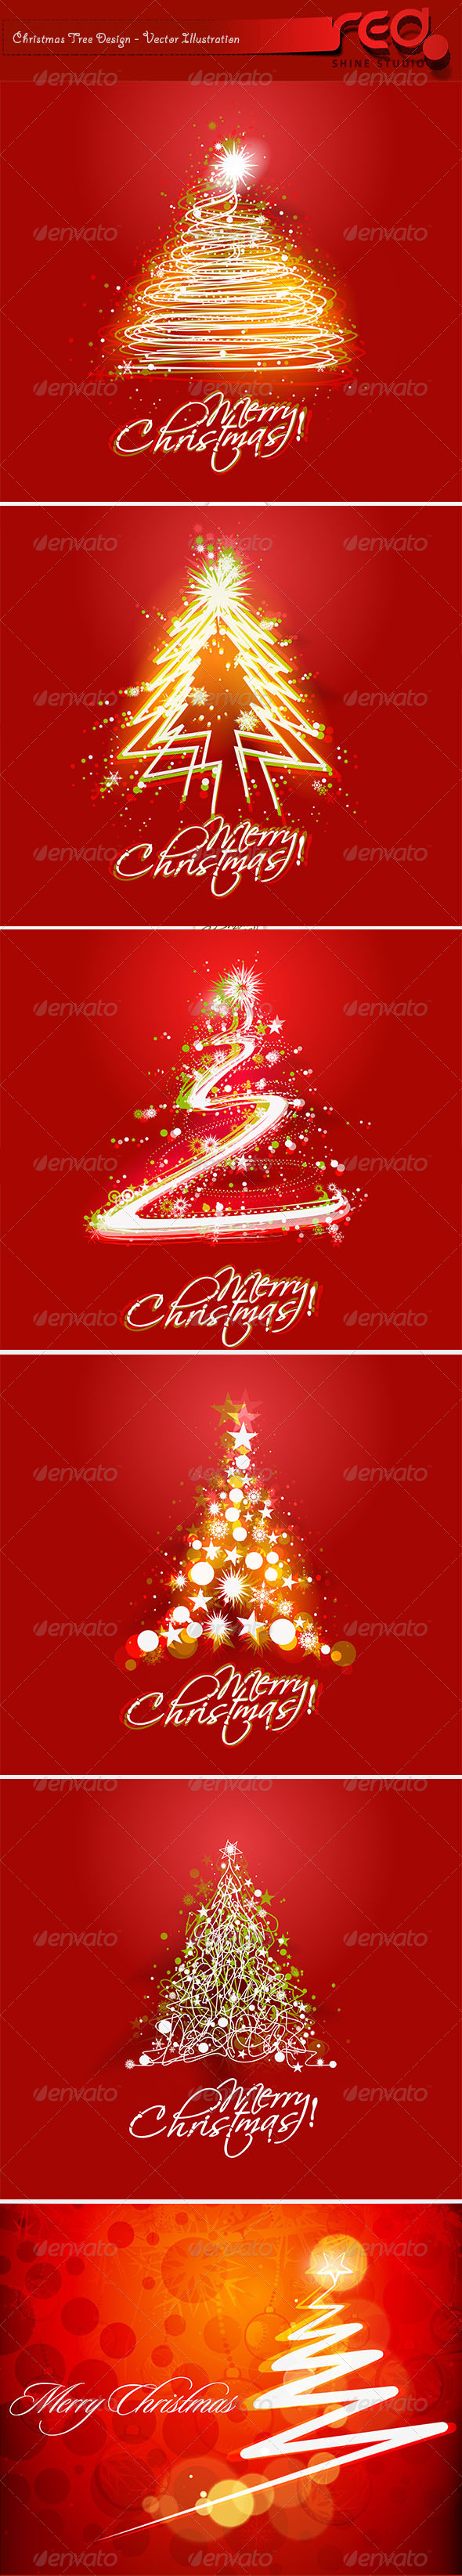 Christmas Backgrounds Pack - Christmas Seasons/Holidays